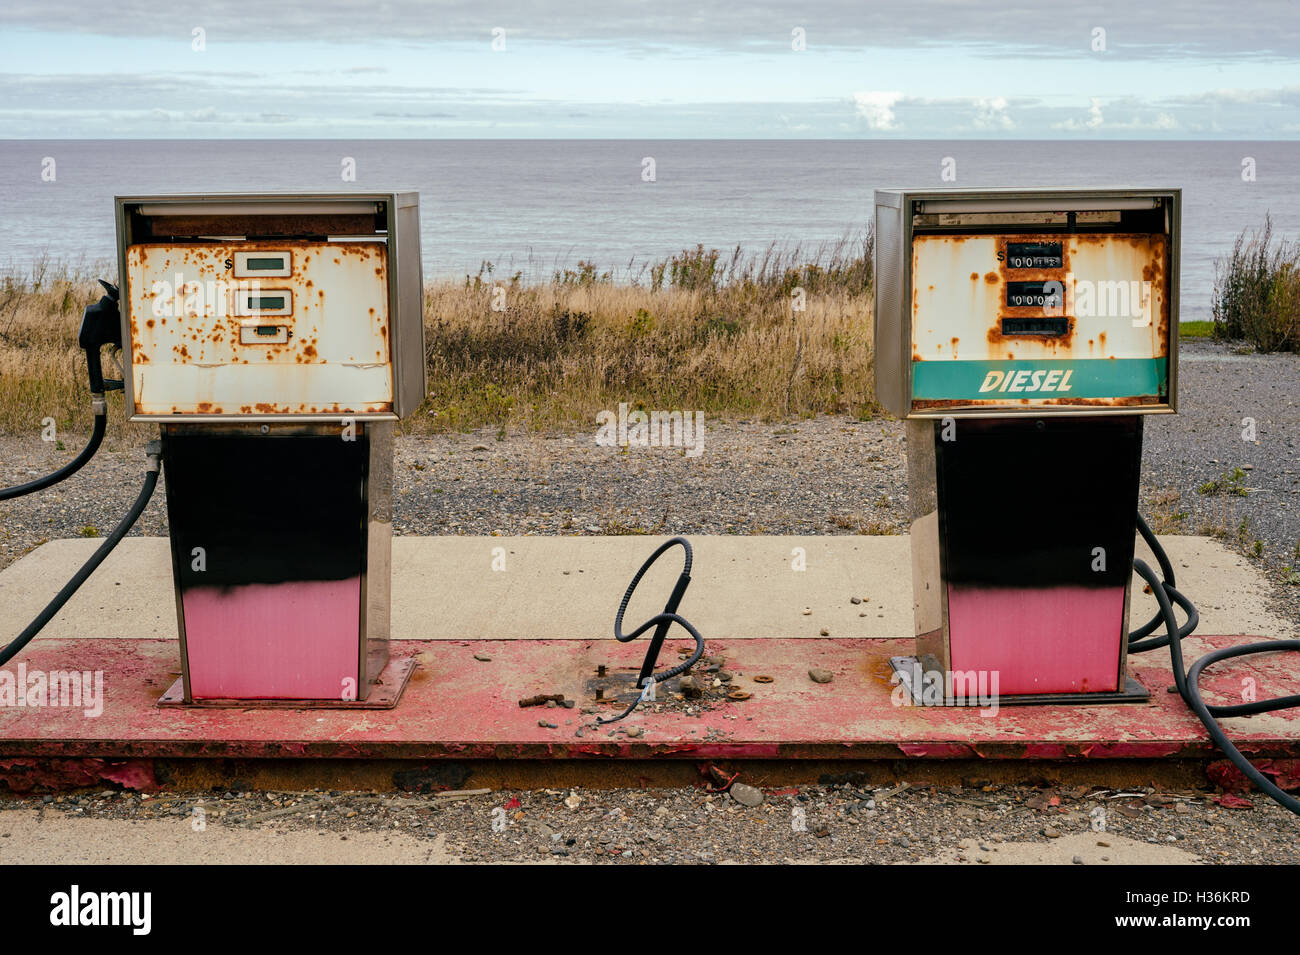 Old dirty gas stations, symbolizing the end of fossil energy - Stock Image